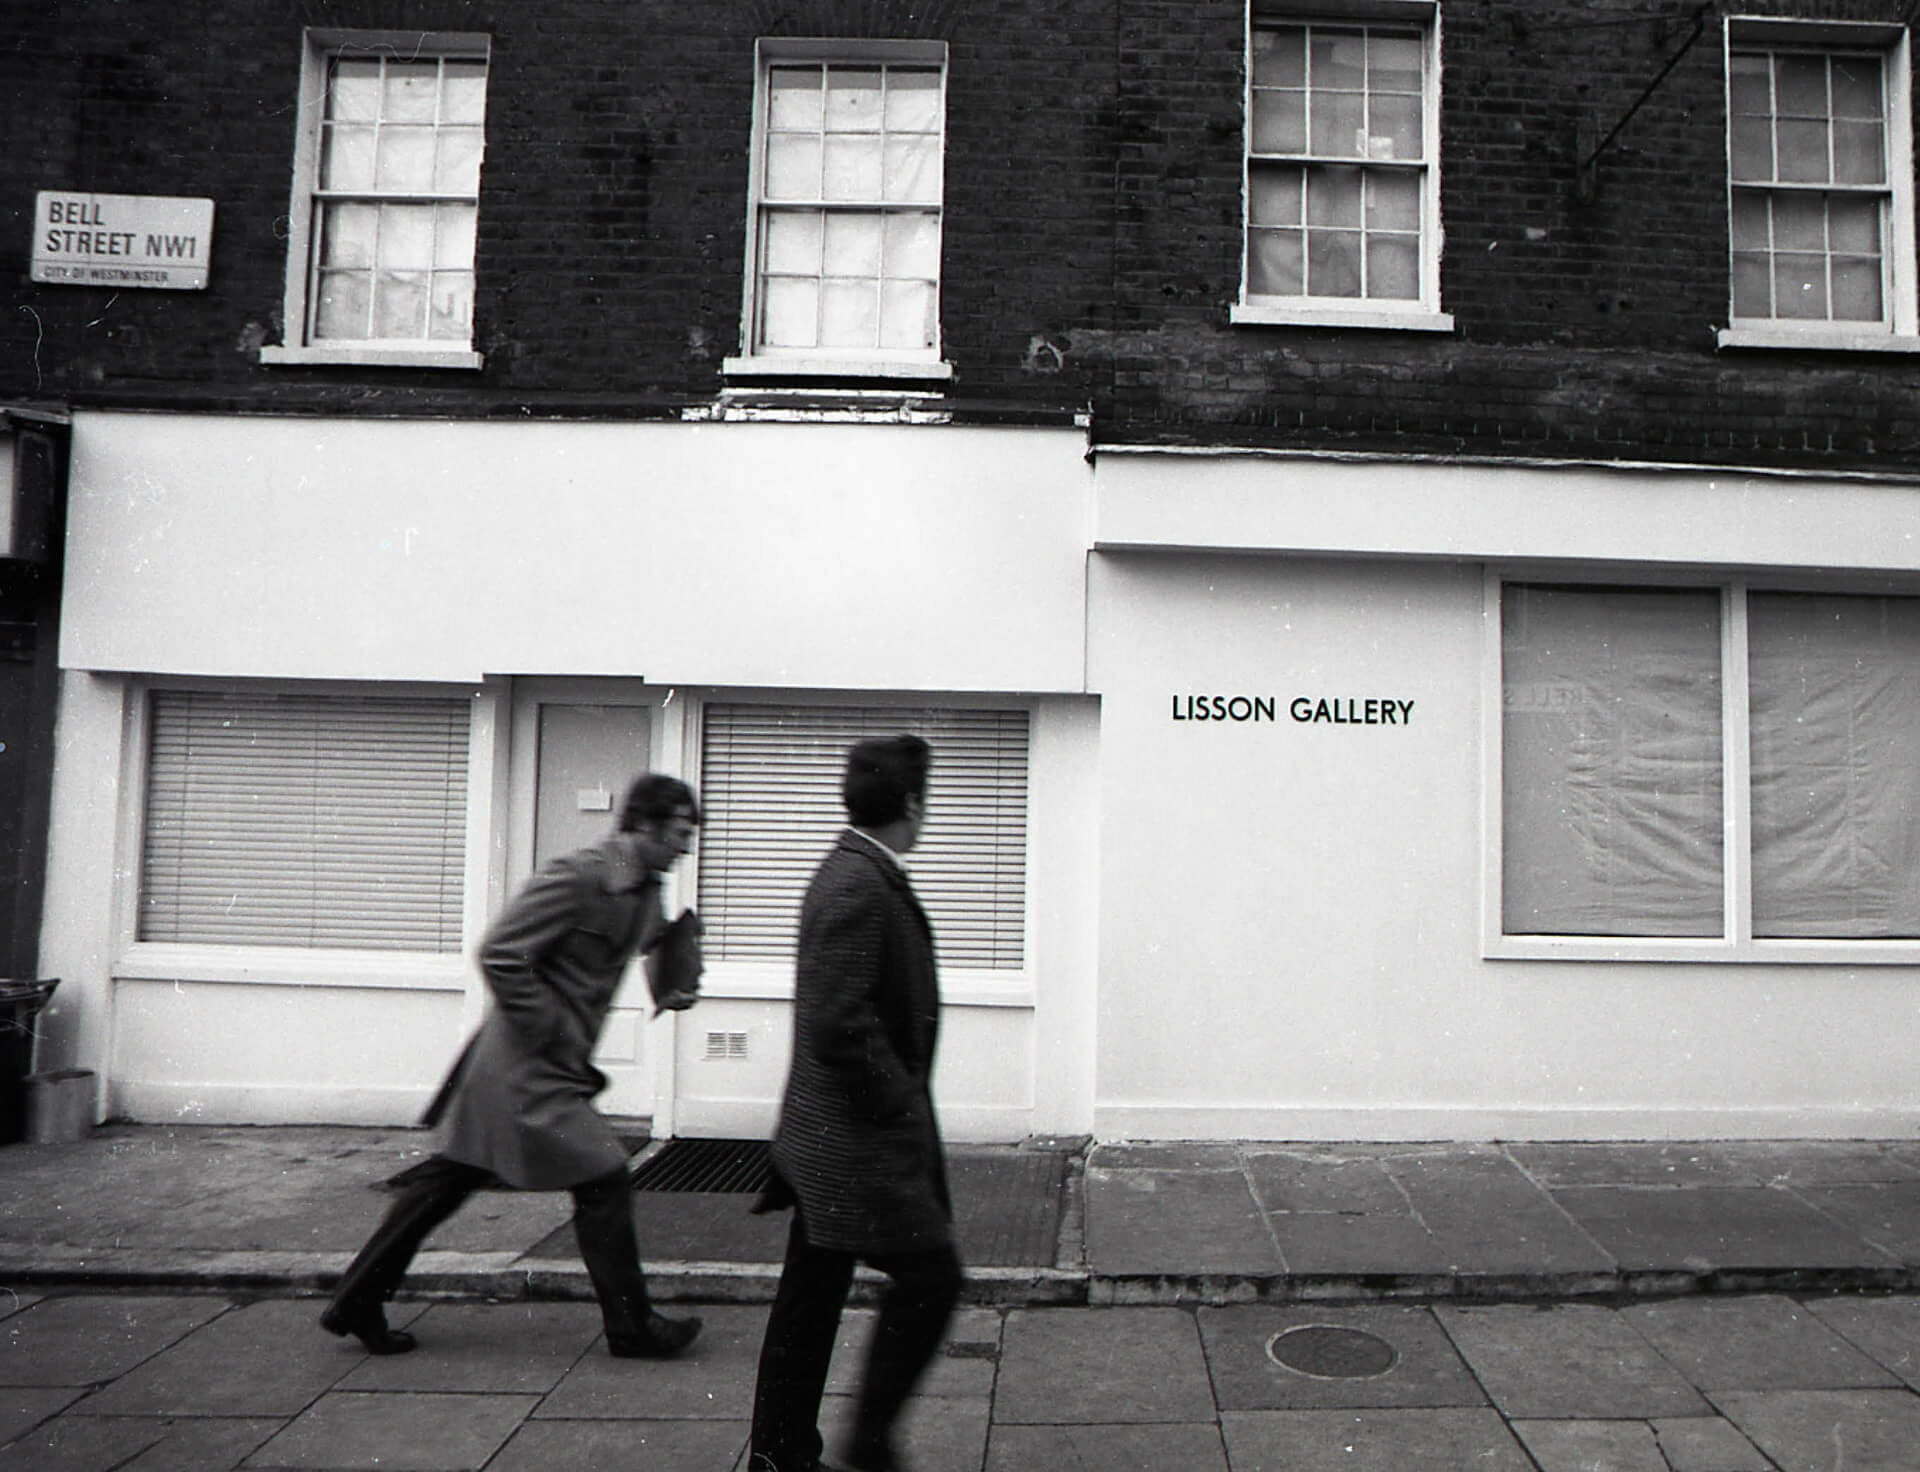 Lisson Gallery celebrates its 50th anniversary